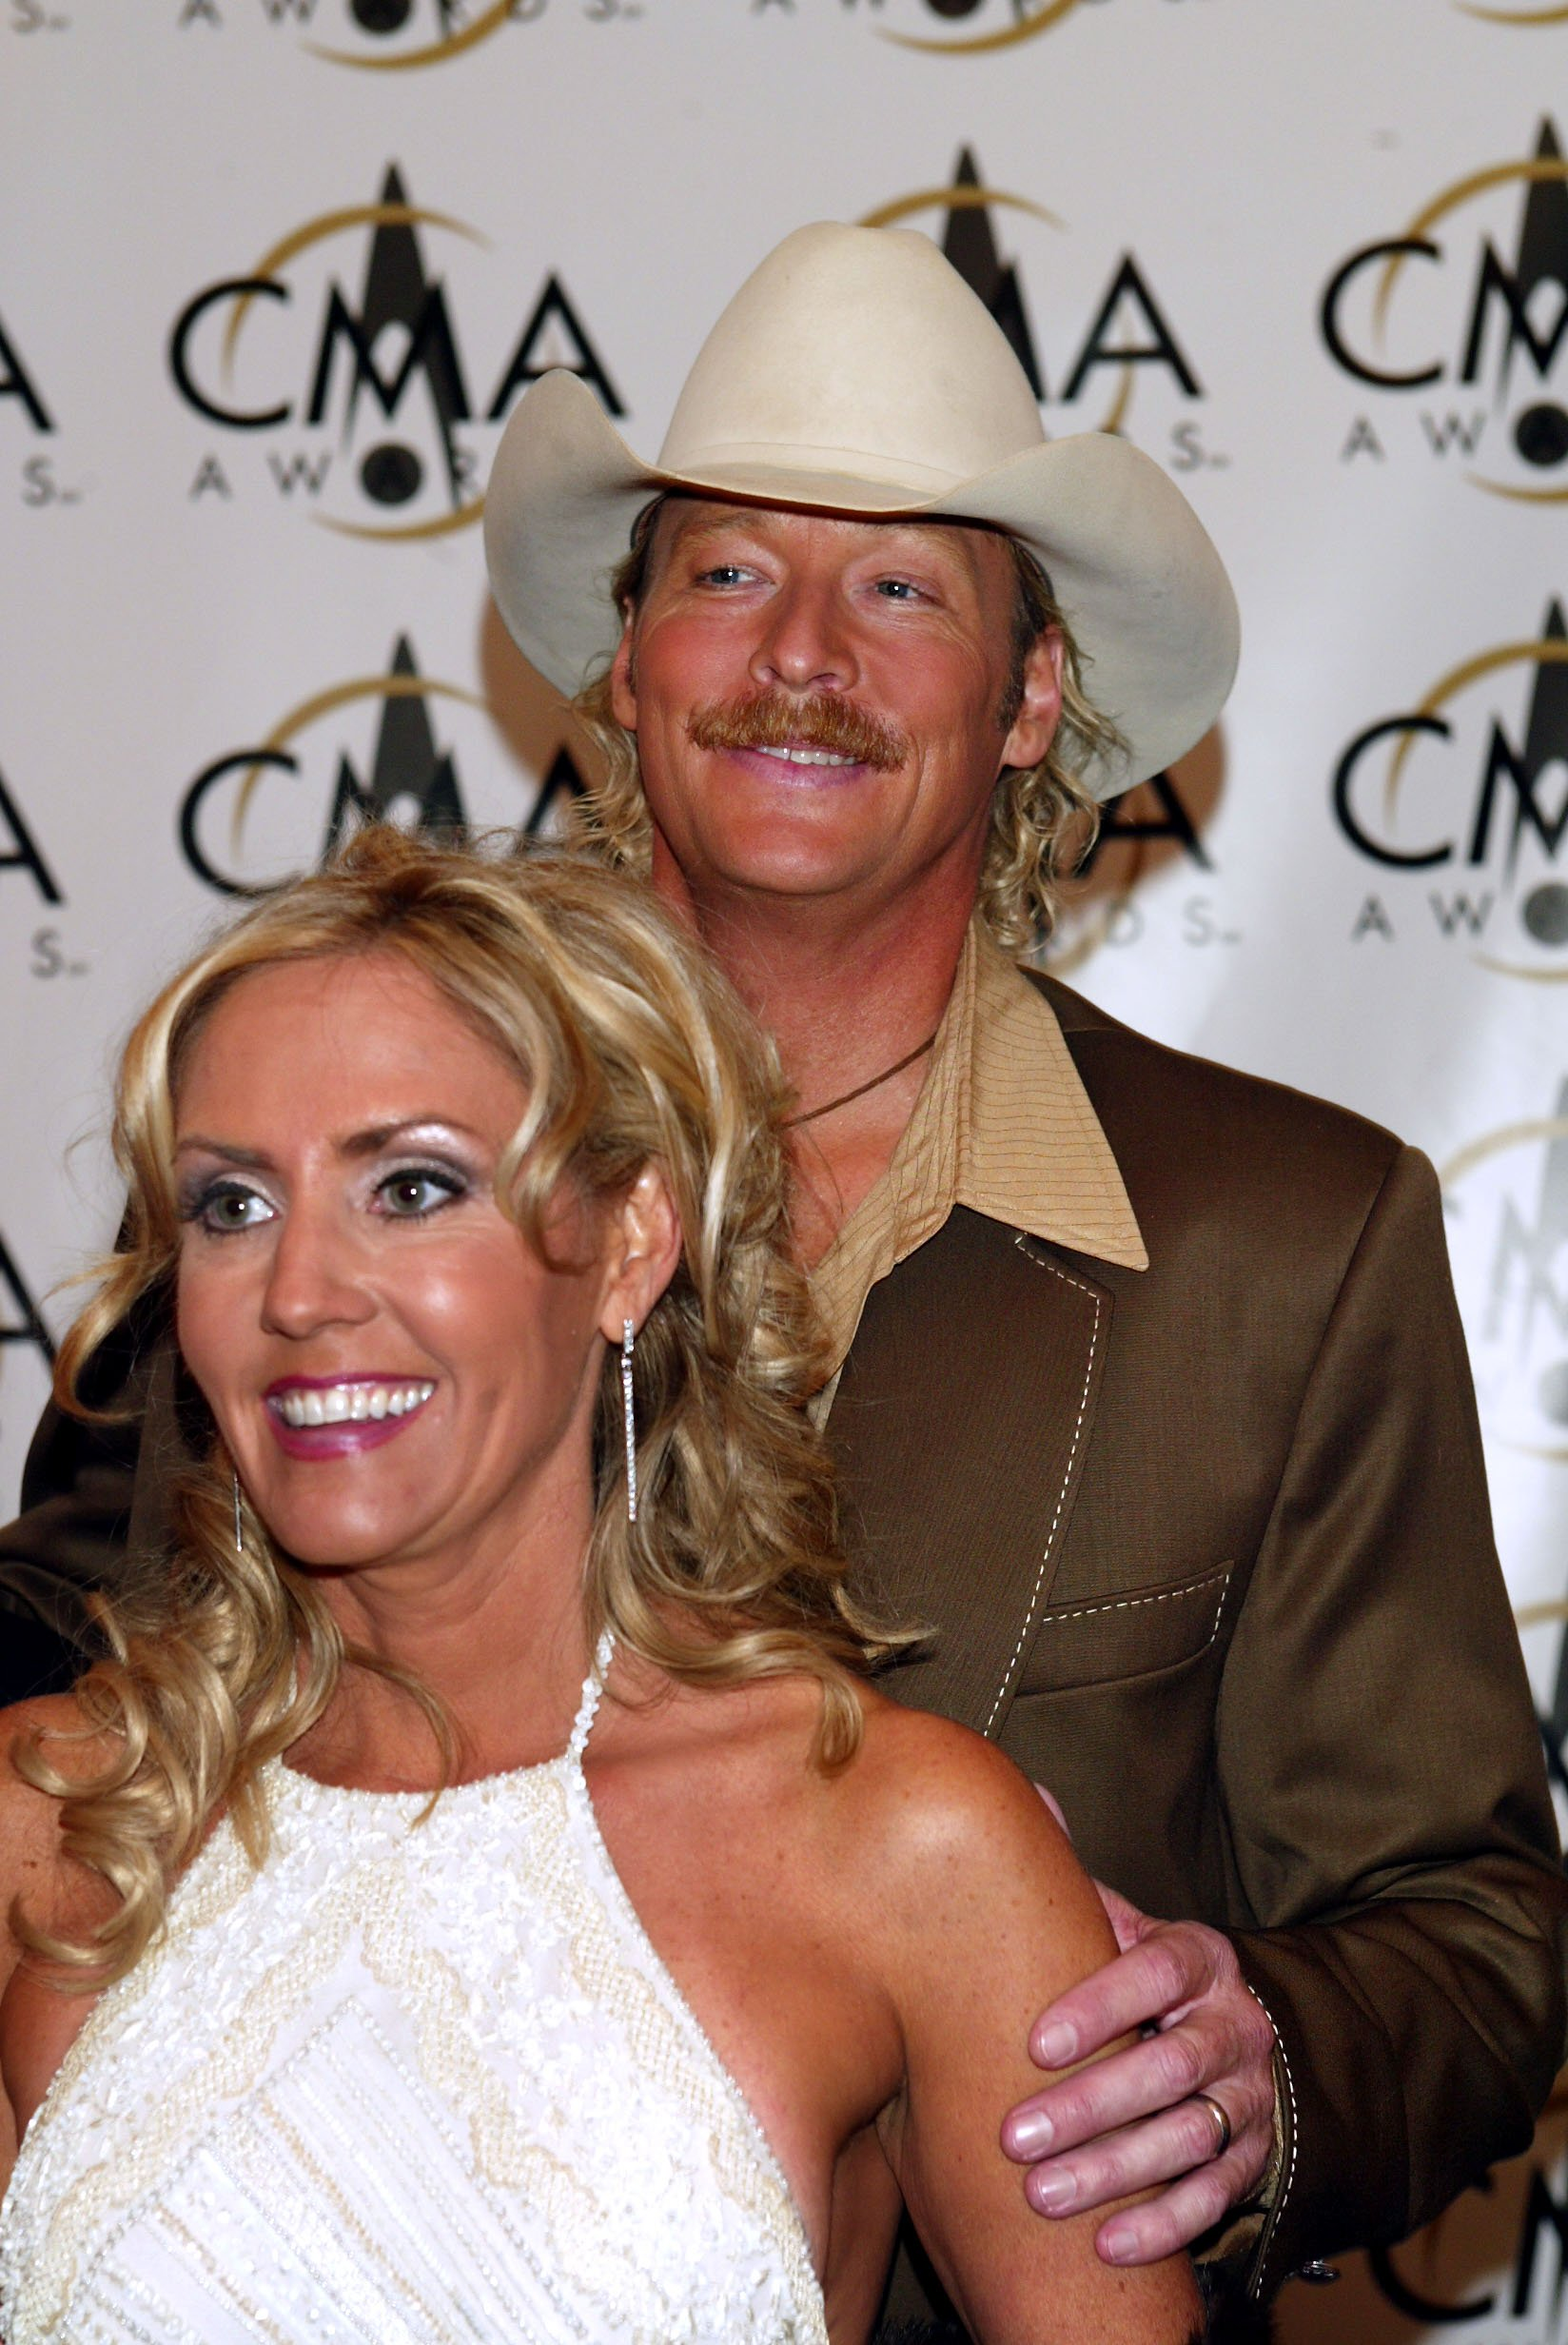 Alan Jackson and his wife Denise attend the 36th annual Country Music Association Awards in Nashville, Tennessee on November 6, 2002 | Photo: Getty Images